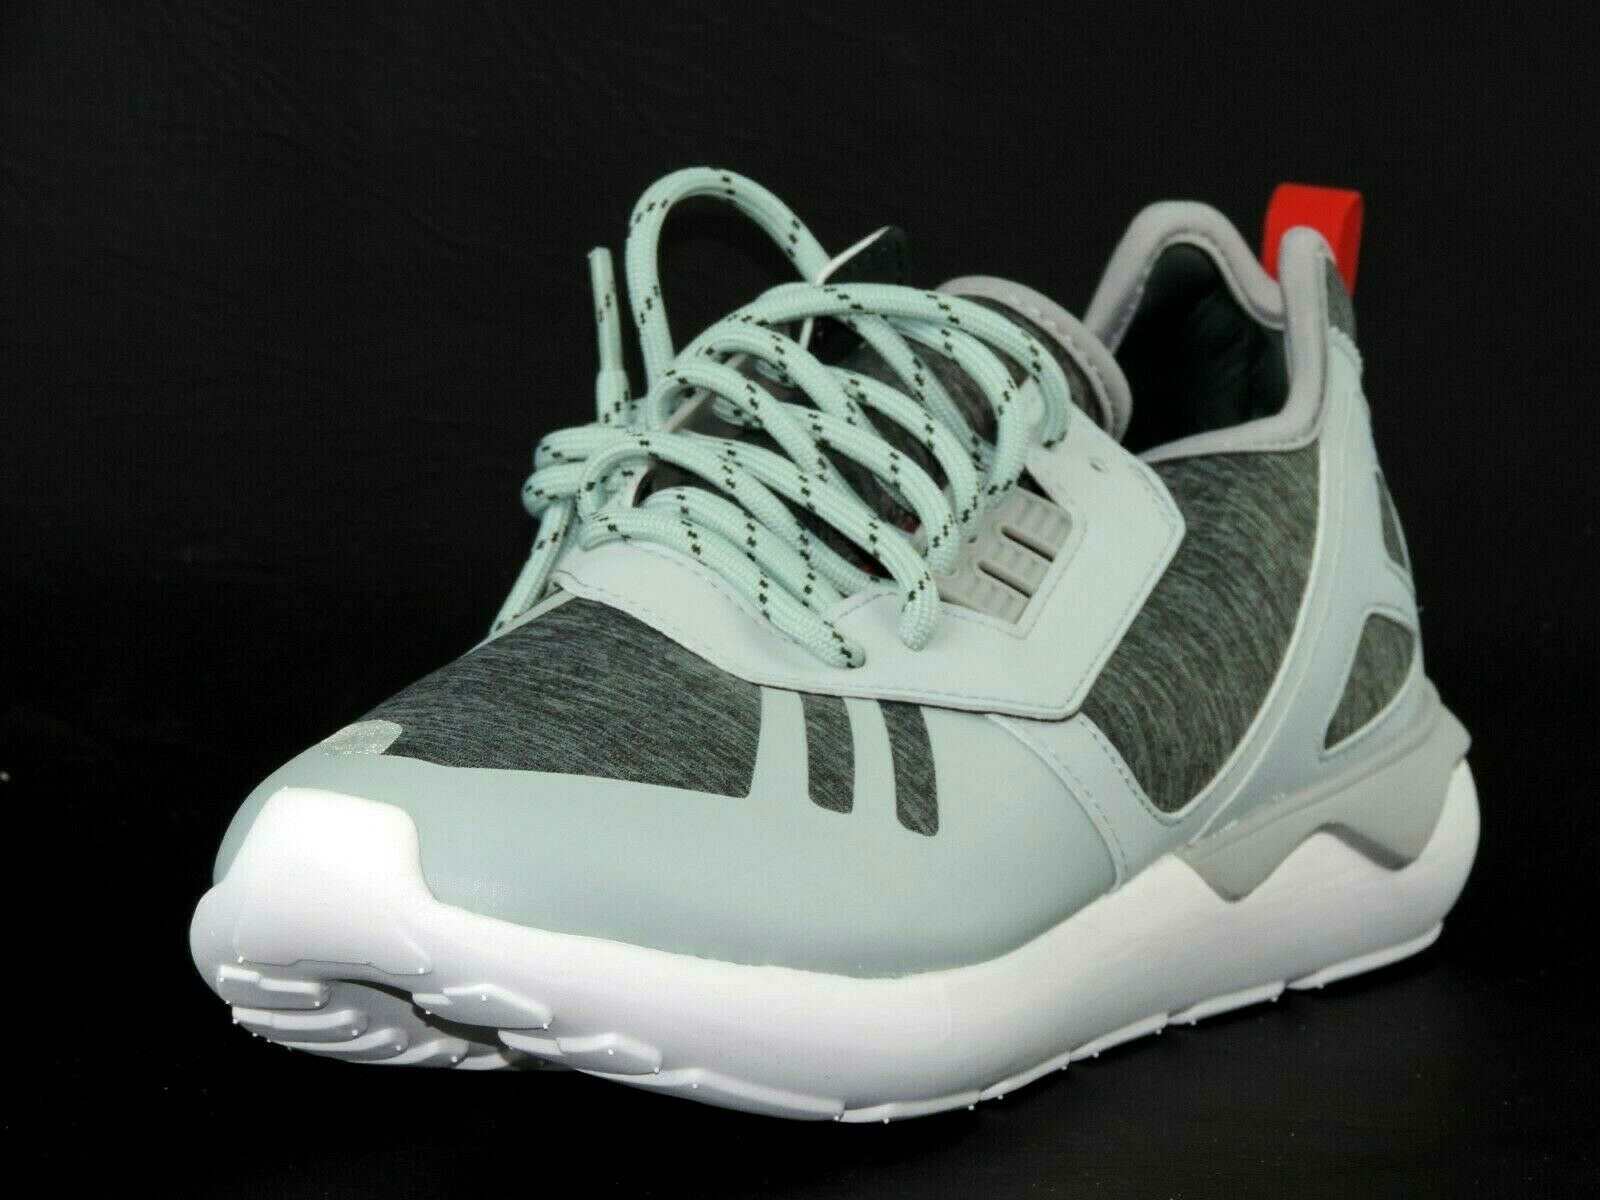 Adidas Tubular Runner Weave S82650 Mens Shoes Missla Grey Textil Running Leather